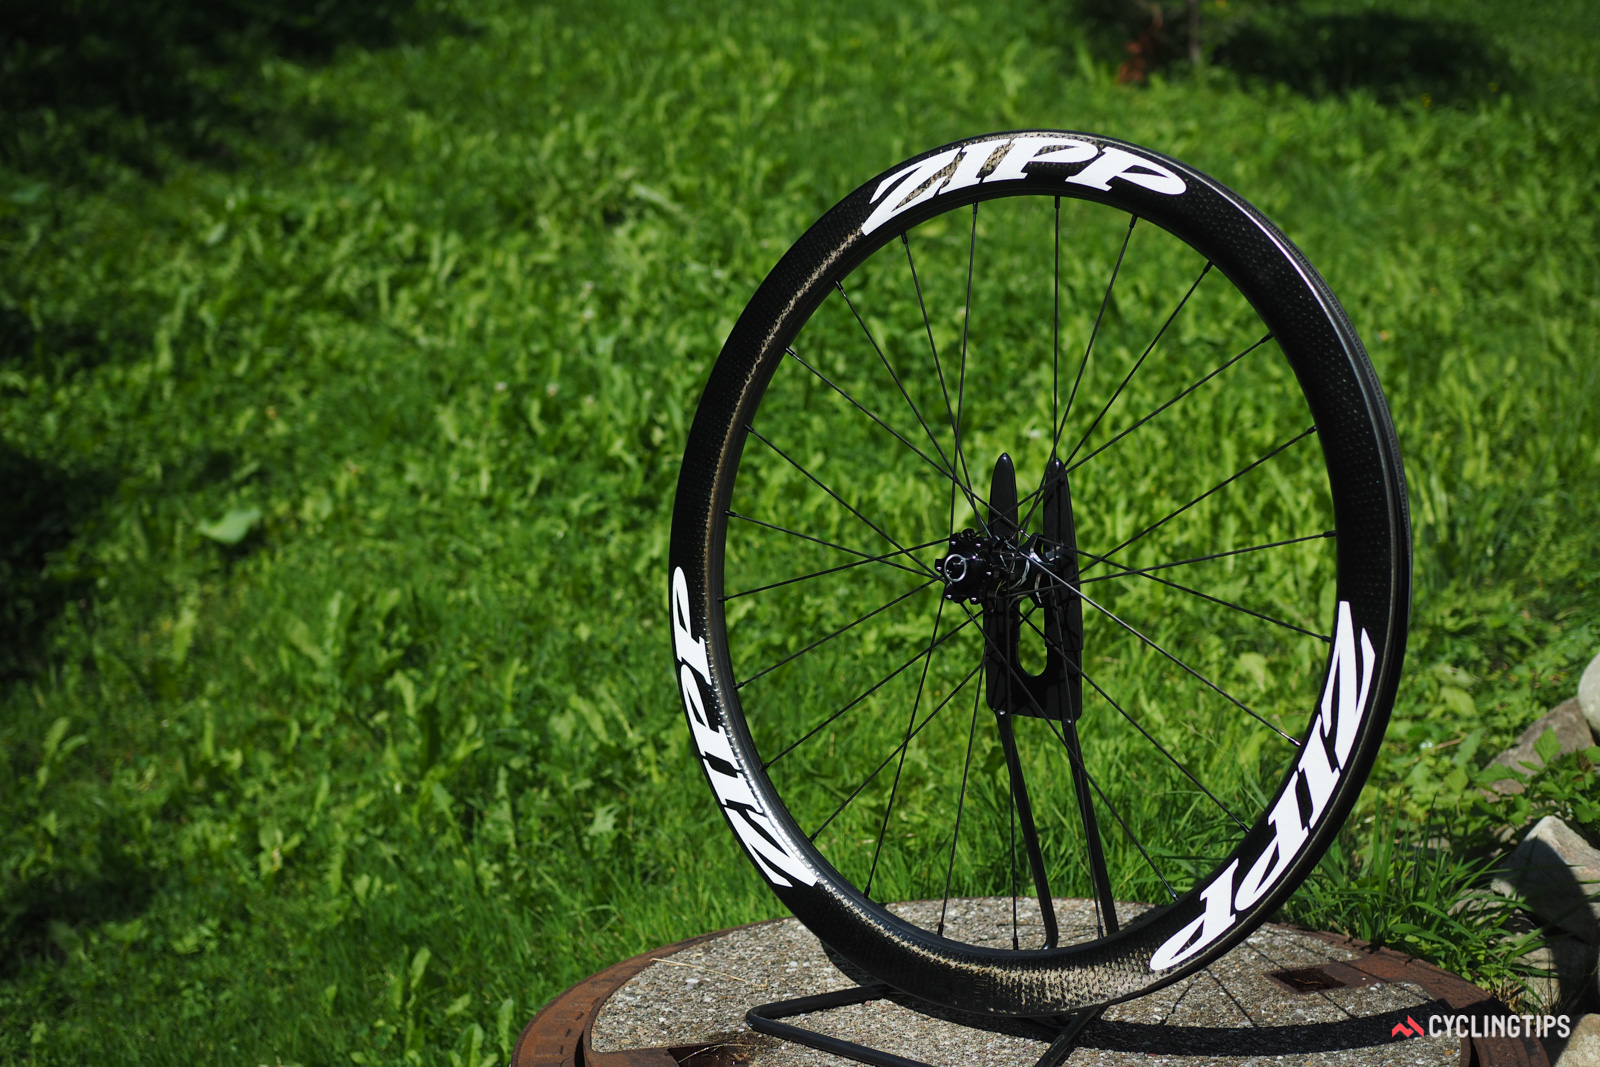 Zipp has been somewhat slow to move to wider internal rim widths, but new models like the disc-specific 303 Firecrest carbon clincher show the direction the company is headed in with a much more progressive 21mm of space between the tubeless-compatible bead hooks.